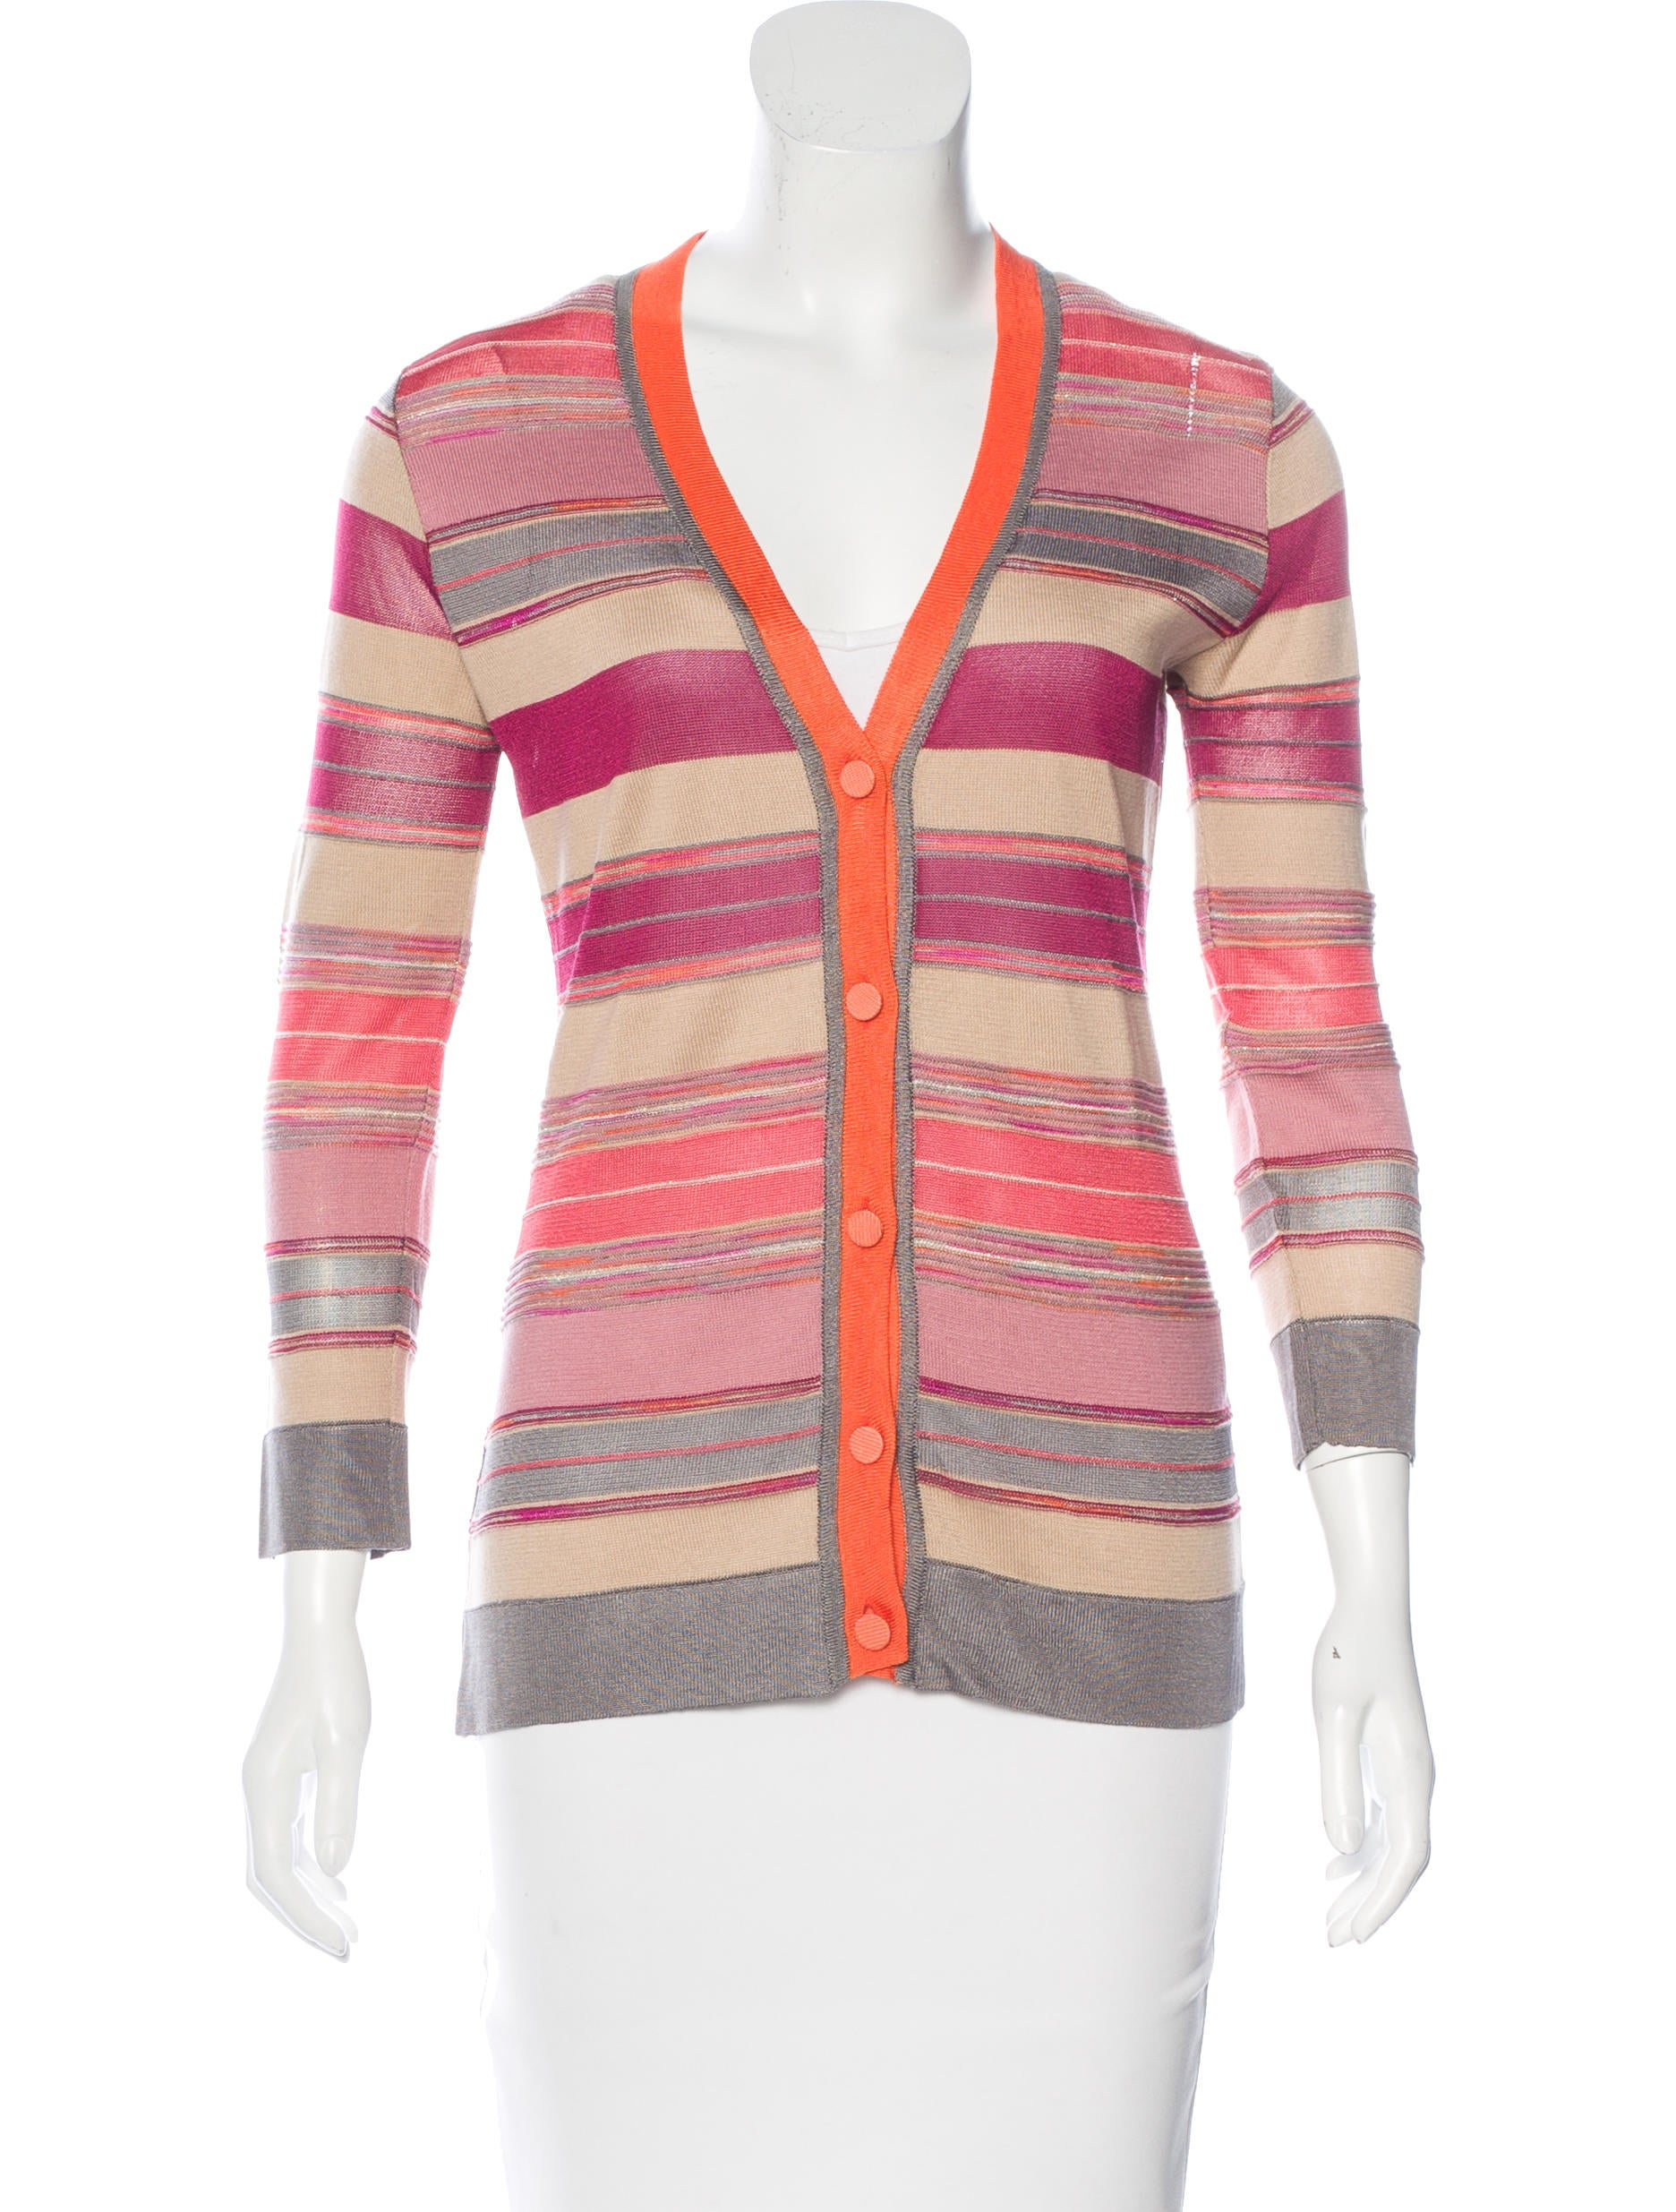 M Missoni Striped Knit Cardigan - Clothing - WM437181 ...